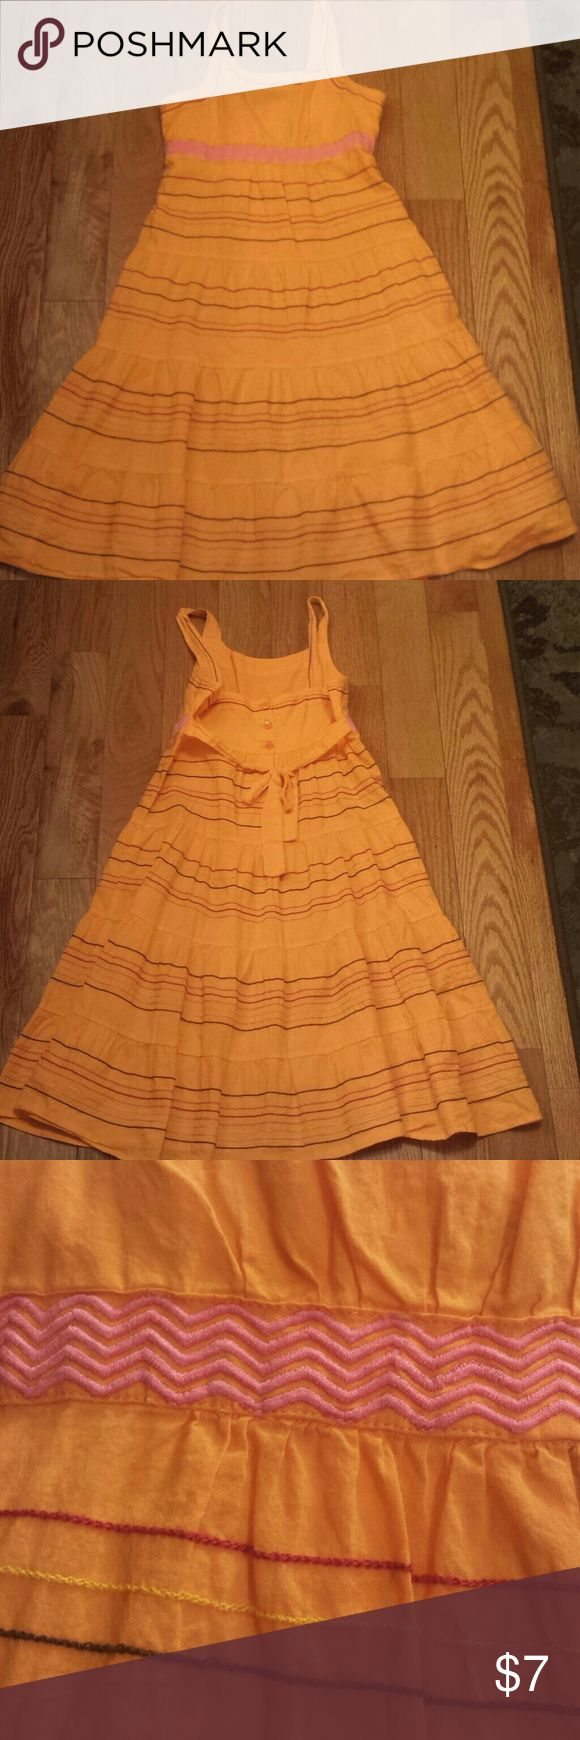 Girls Sundress Size 14 Cute orange girls sundress; Size 14; Ties in back; Pink, yellow, red, and black thread accents; Very cute! George Dresses Casual